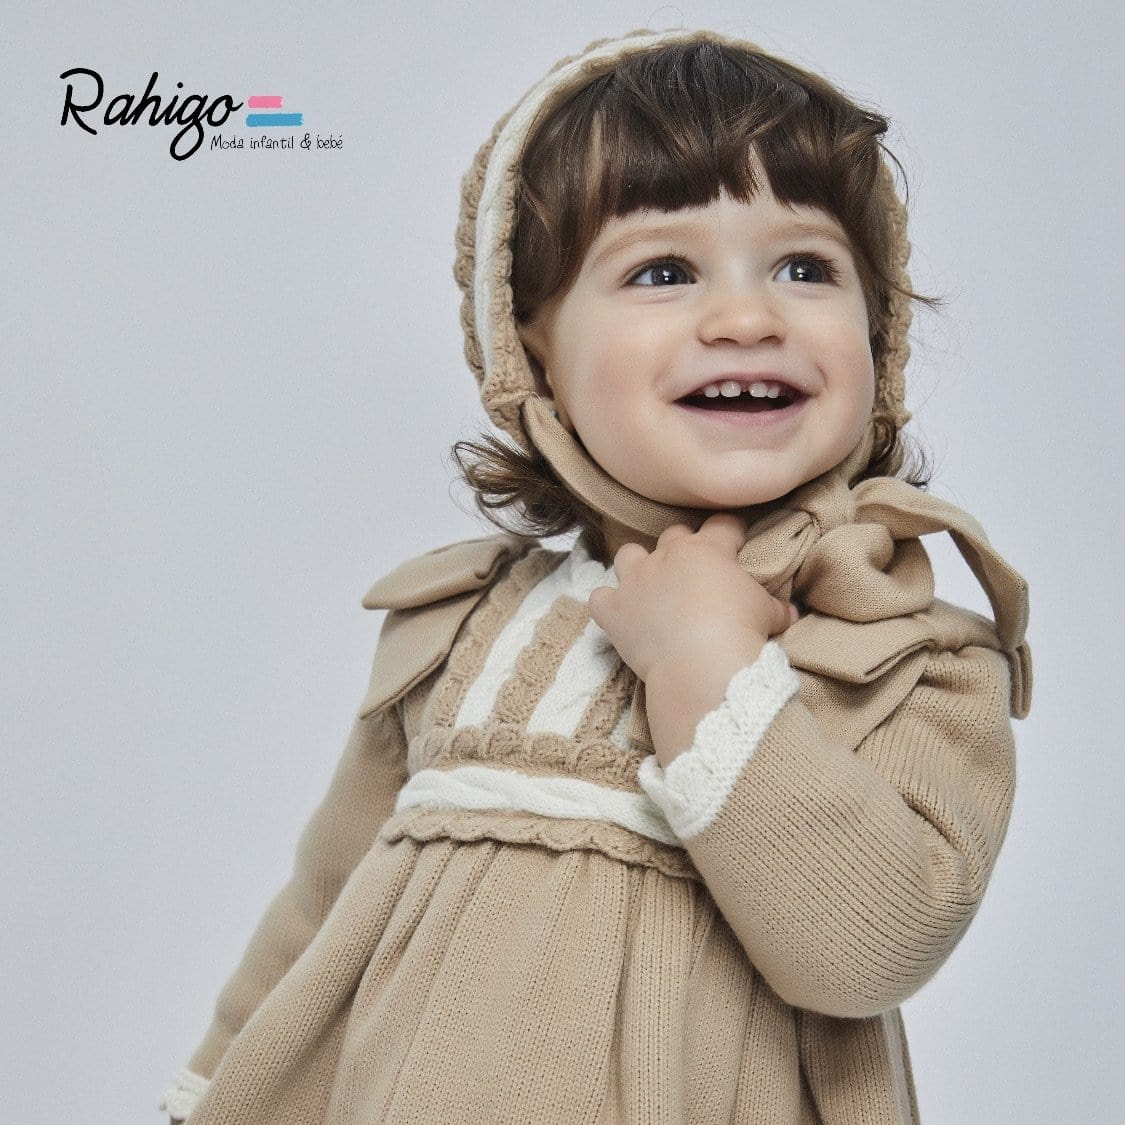 RAHIGO NANCY  DRESS & BONNET